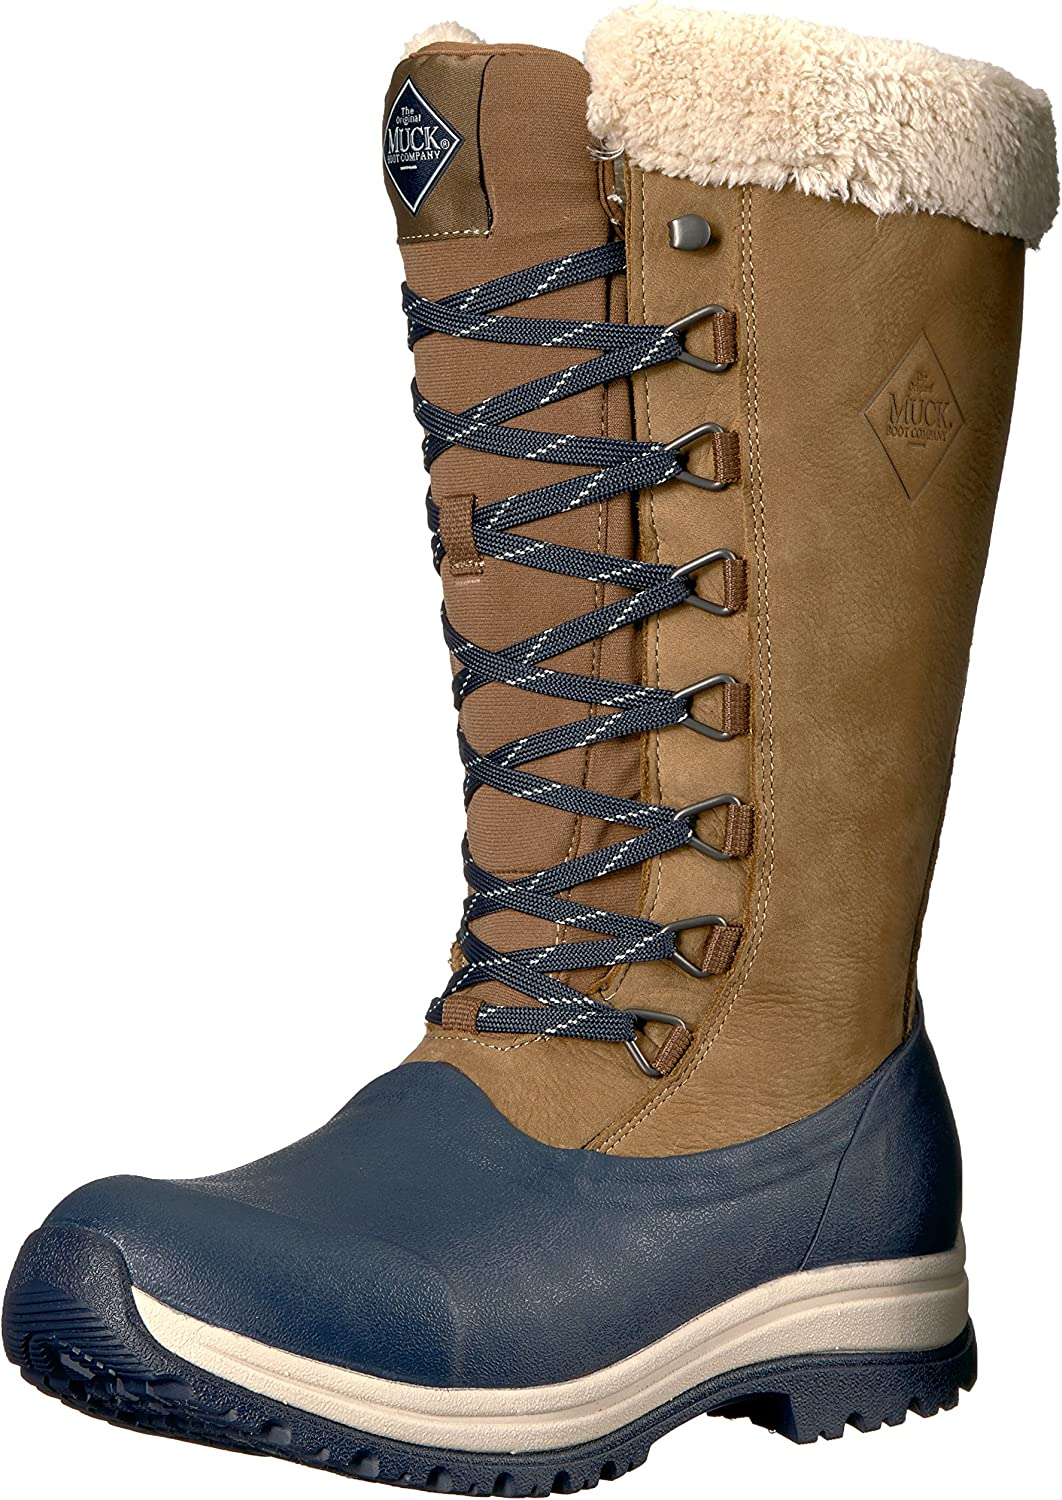 Muck Boot Womens Apres Lace Tall (13 ) Work Boot